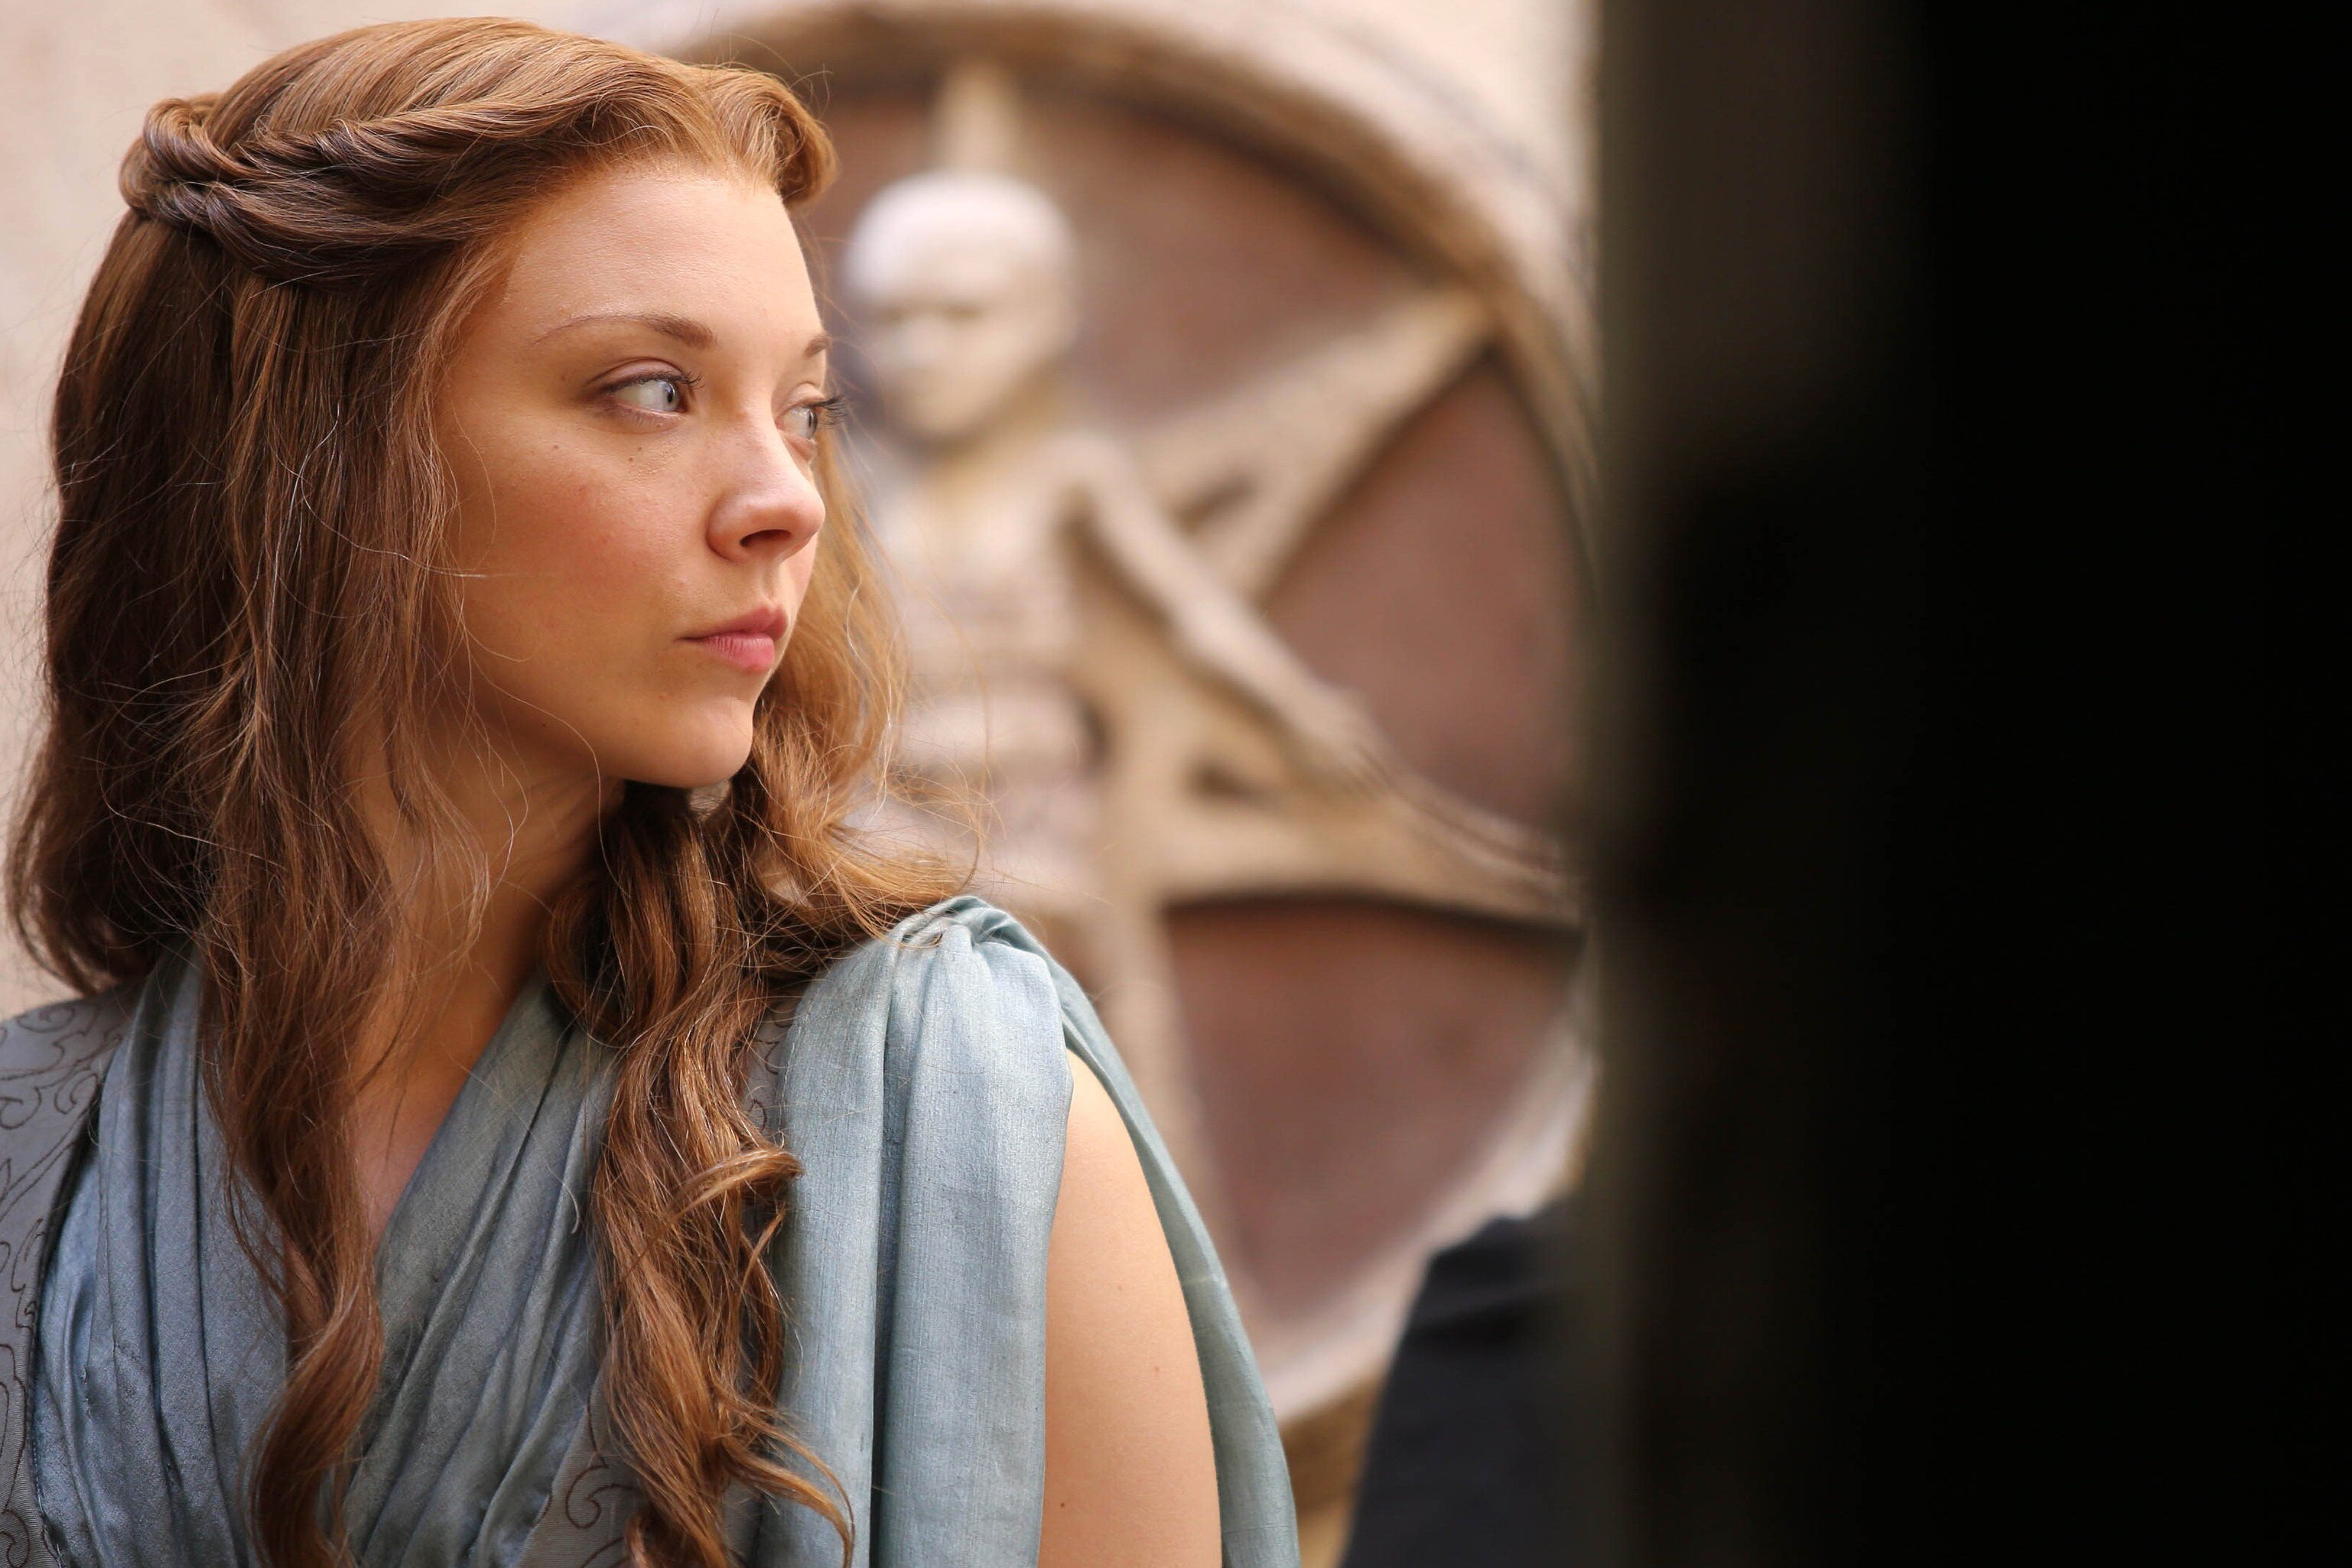 3075x2050 2016 Natalie Dormer Game Of Thrones 3075x2050 Resolution